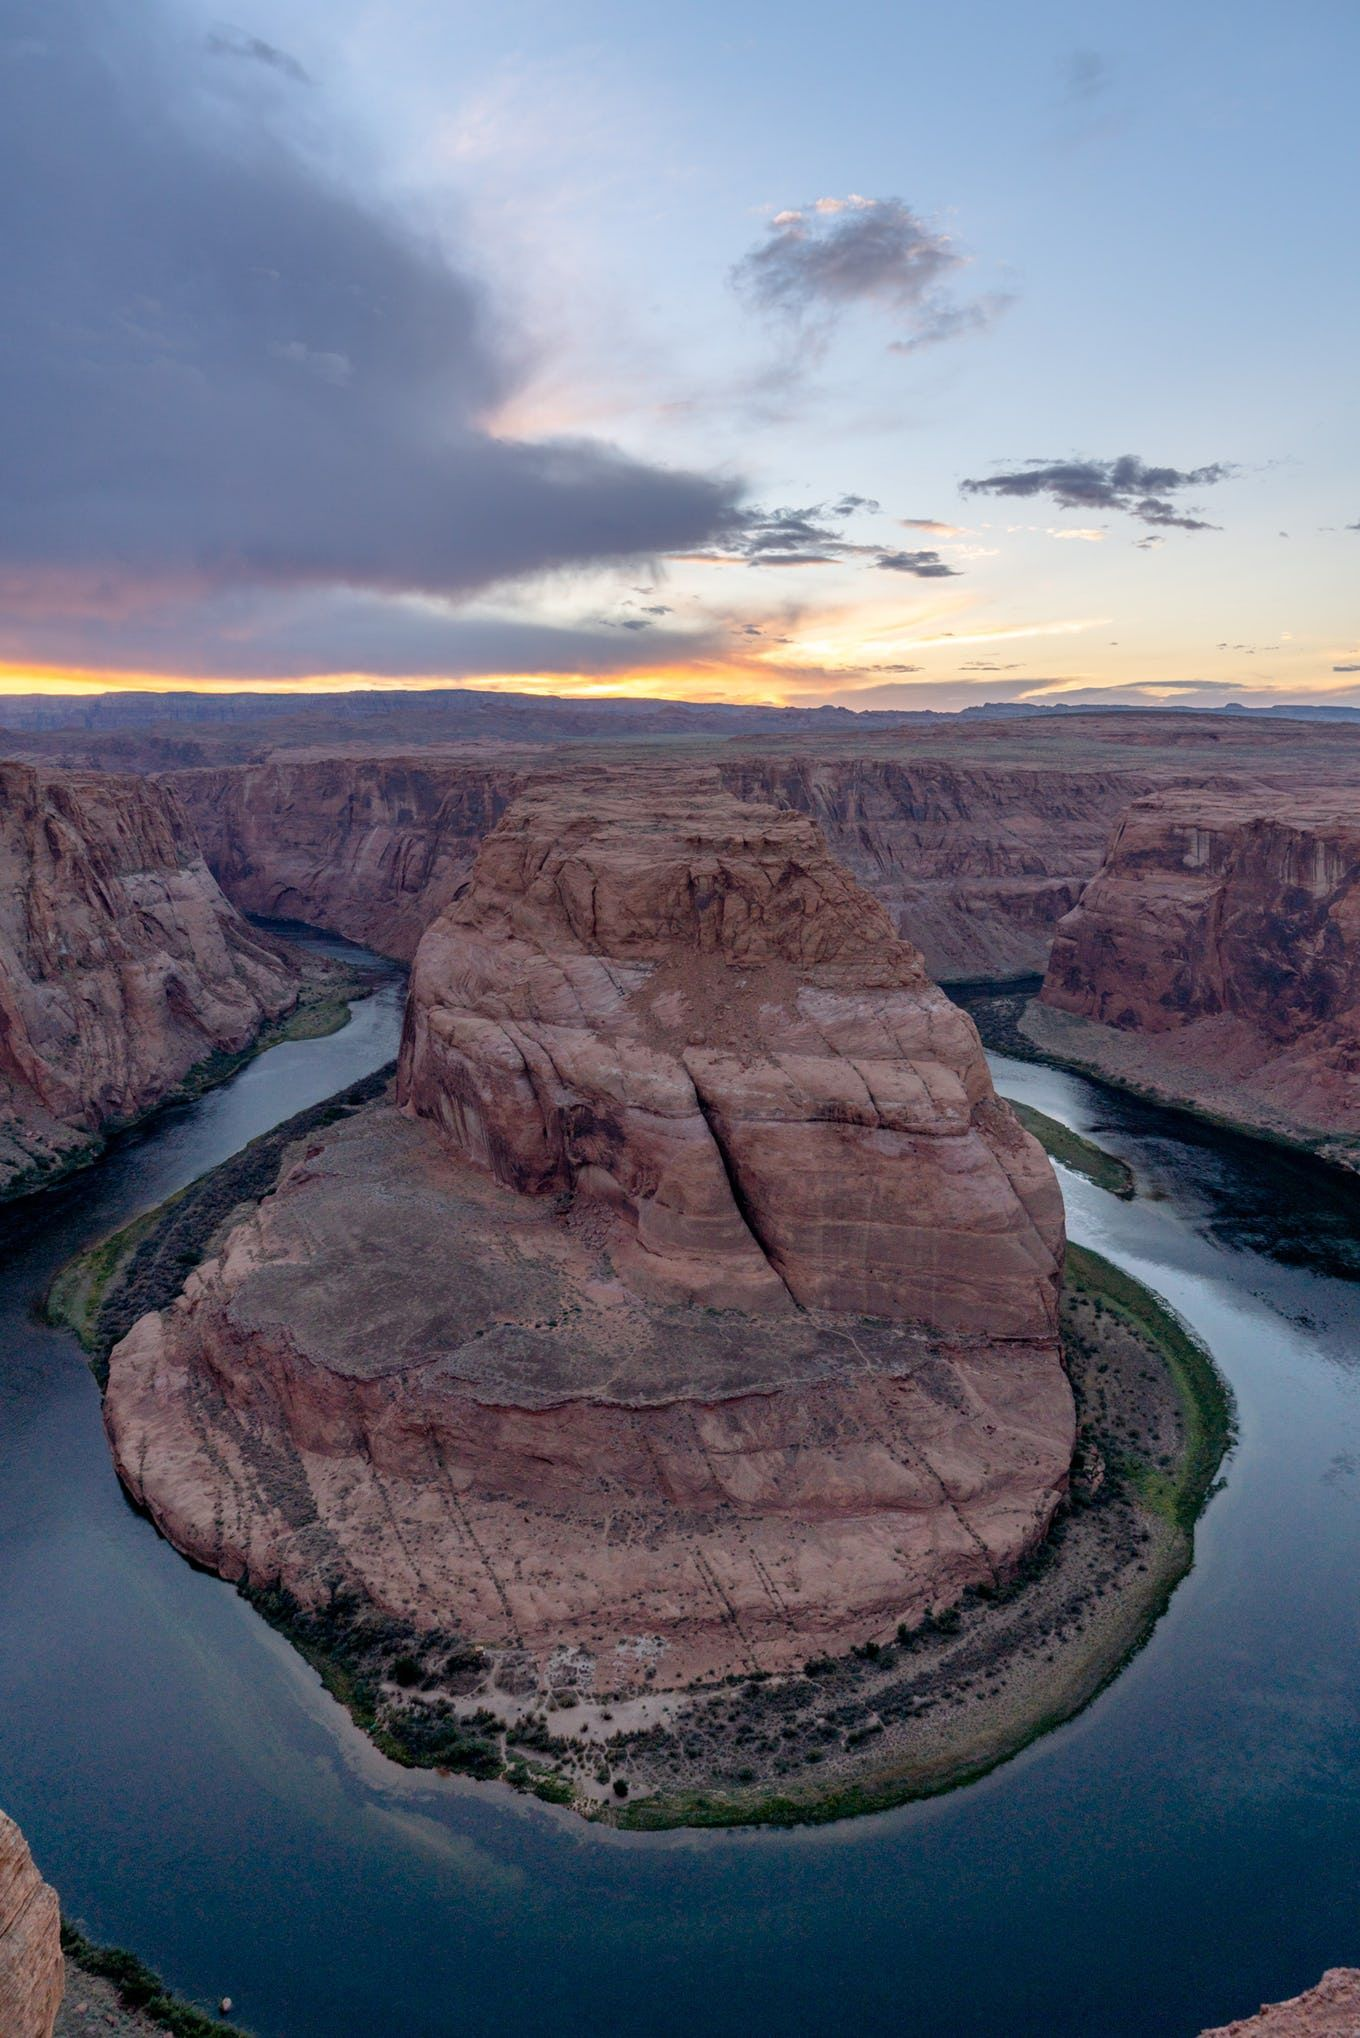 8 Day Road Trip Itinerary - A Guide To Southern Utah and